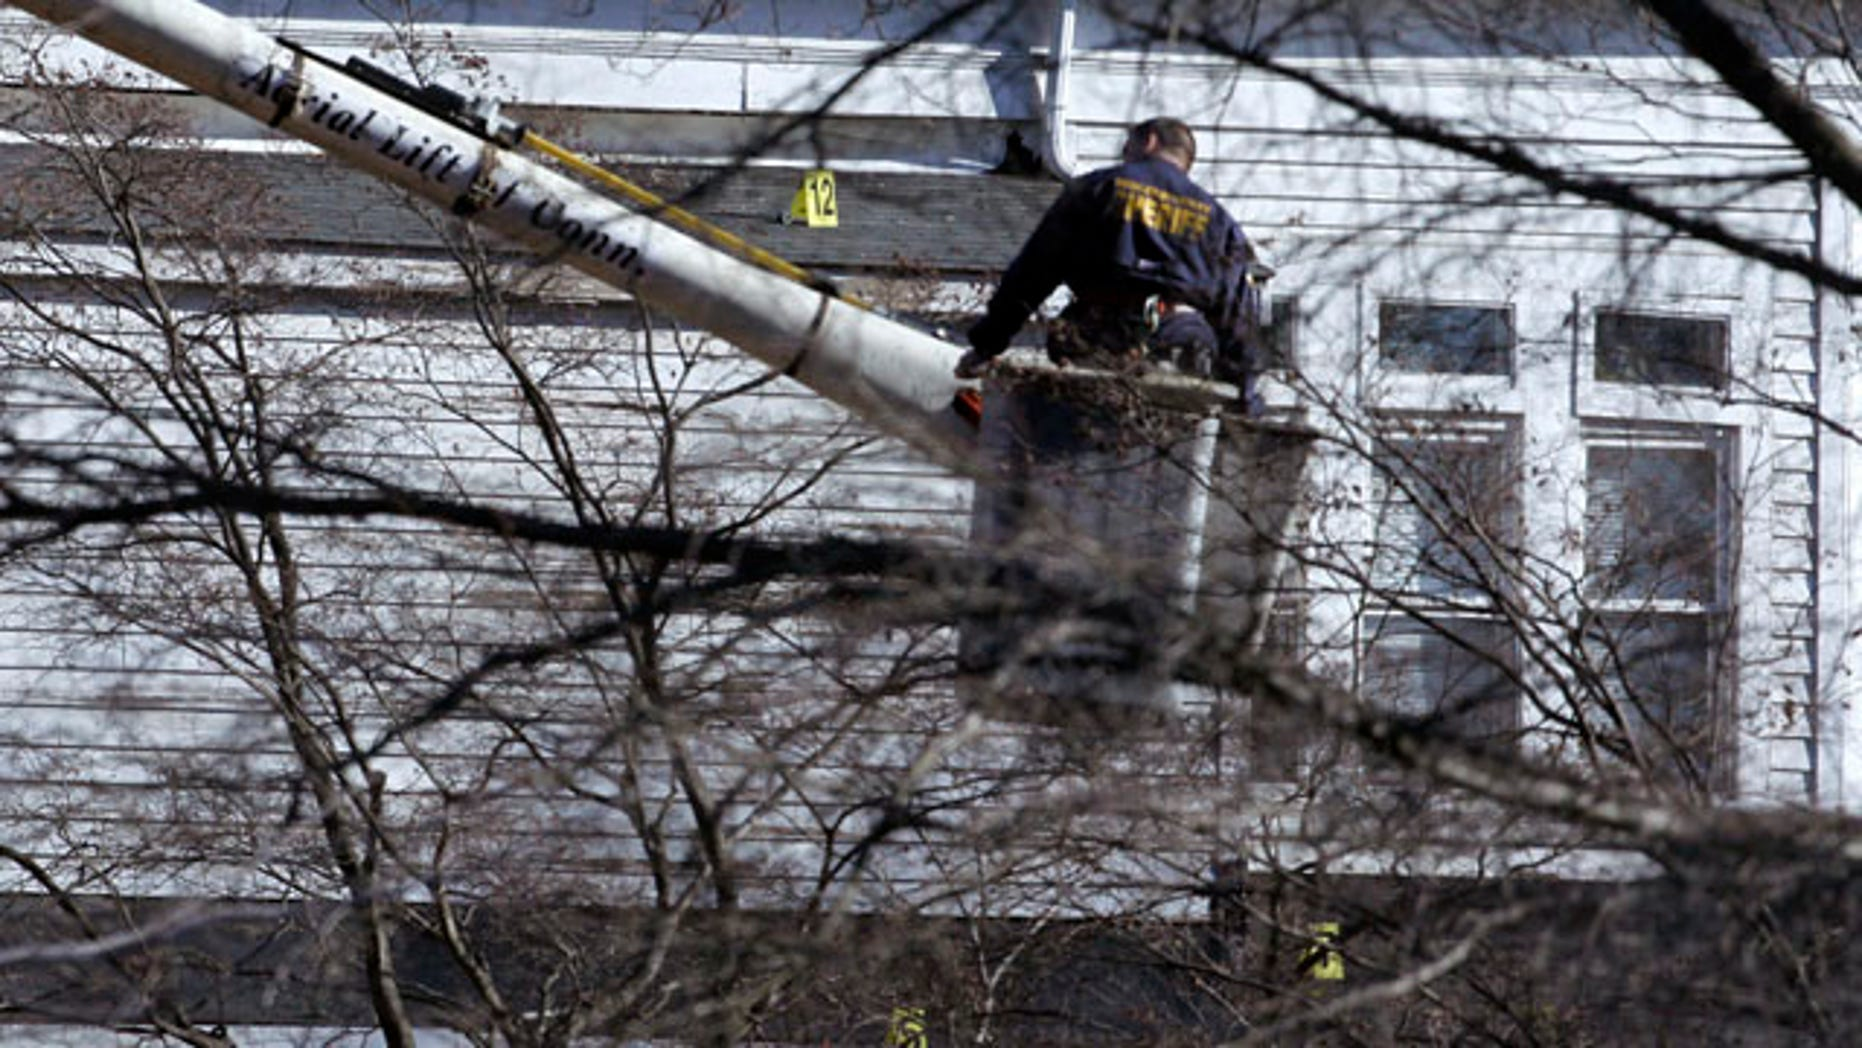 Jan. 11: A Bergen County Sheriff's investigator stands on a lift as markers sit on the roof of Congregation Beth El as authorities investigate an early morning fire.